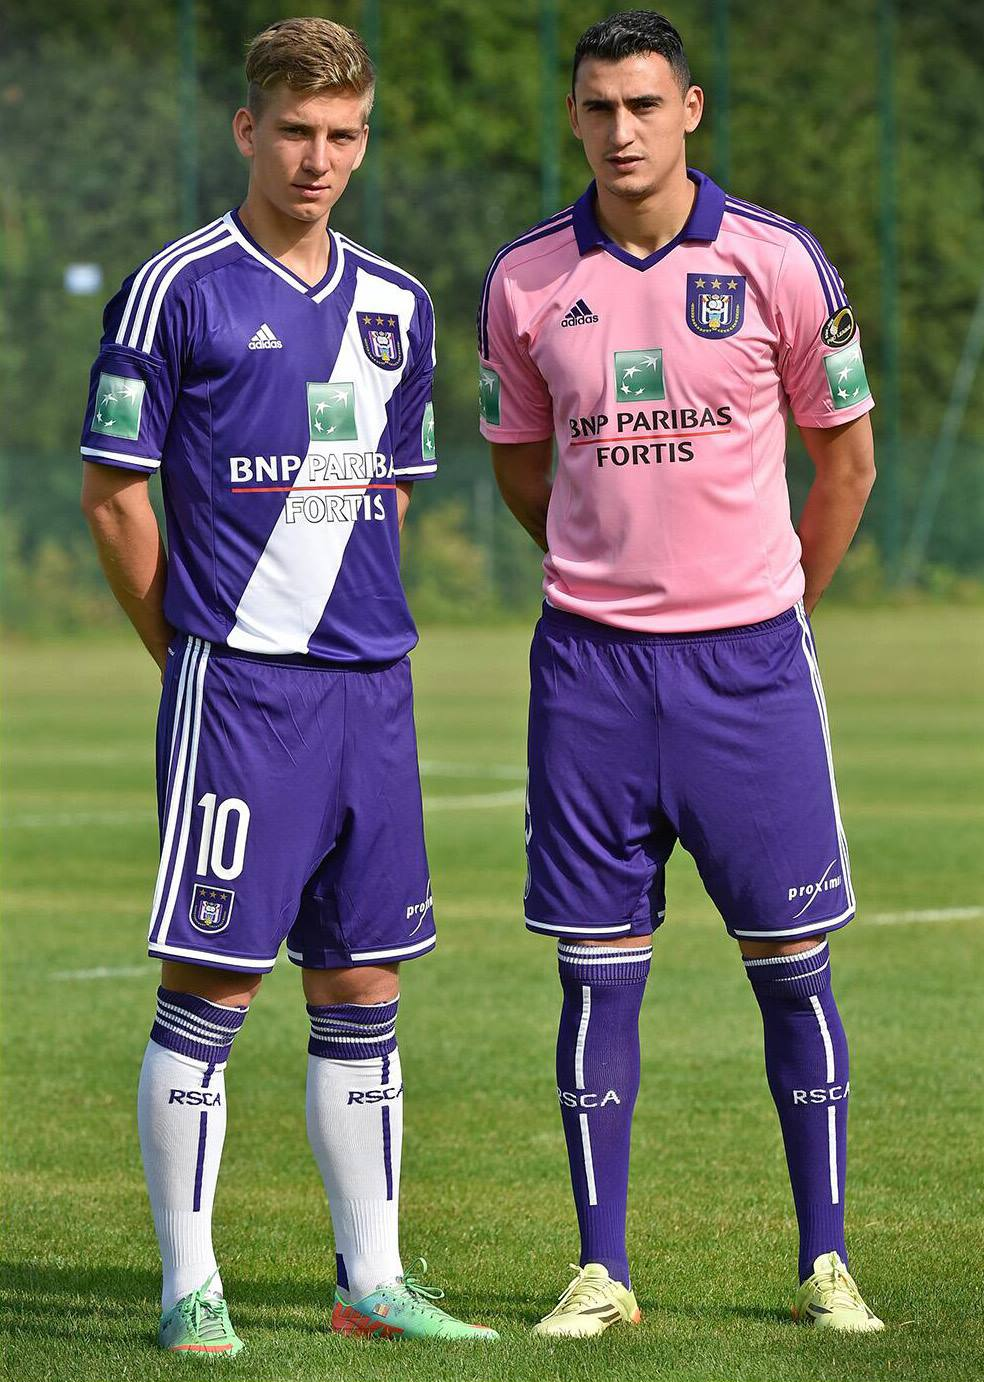 e71c662a8 RSC Anderlecht 14-15 Home + Pink Away Kit Released - Footy Headlines